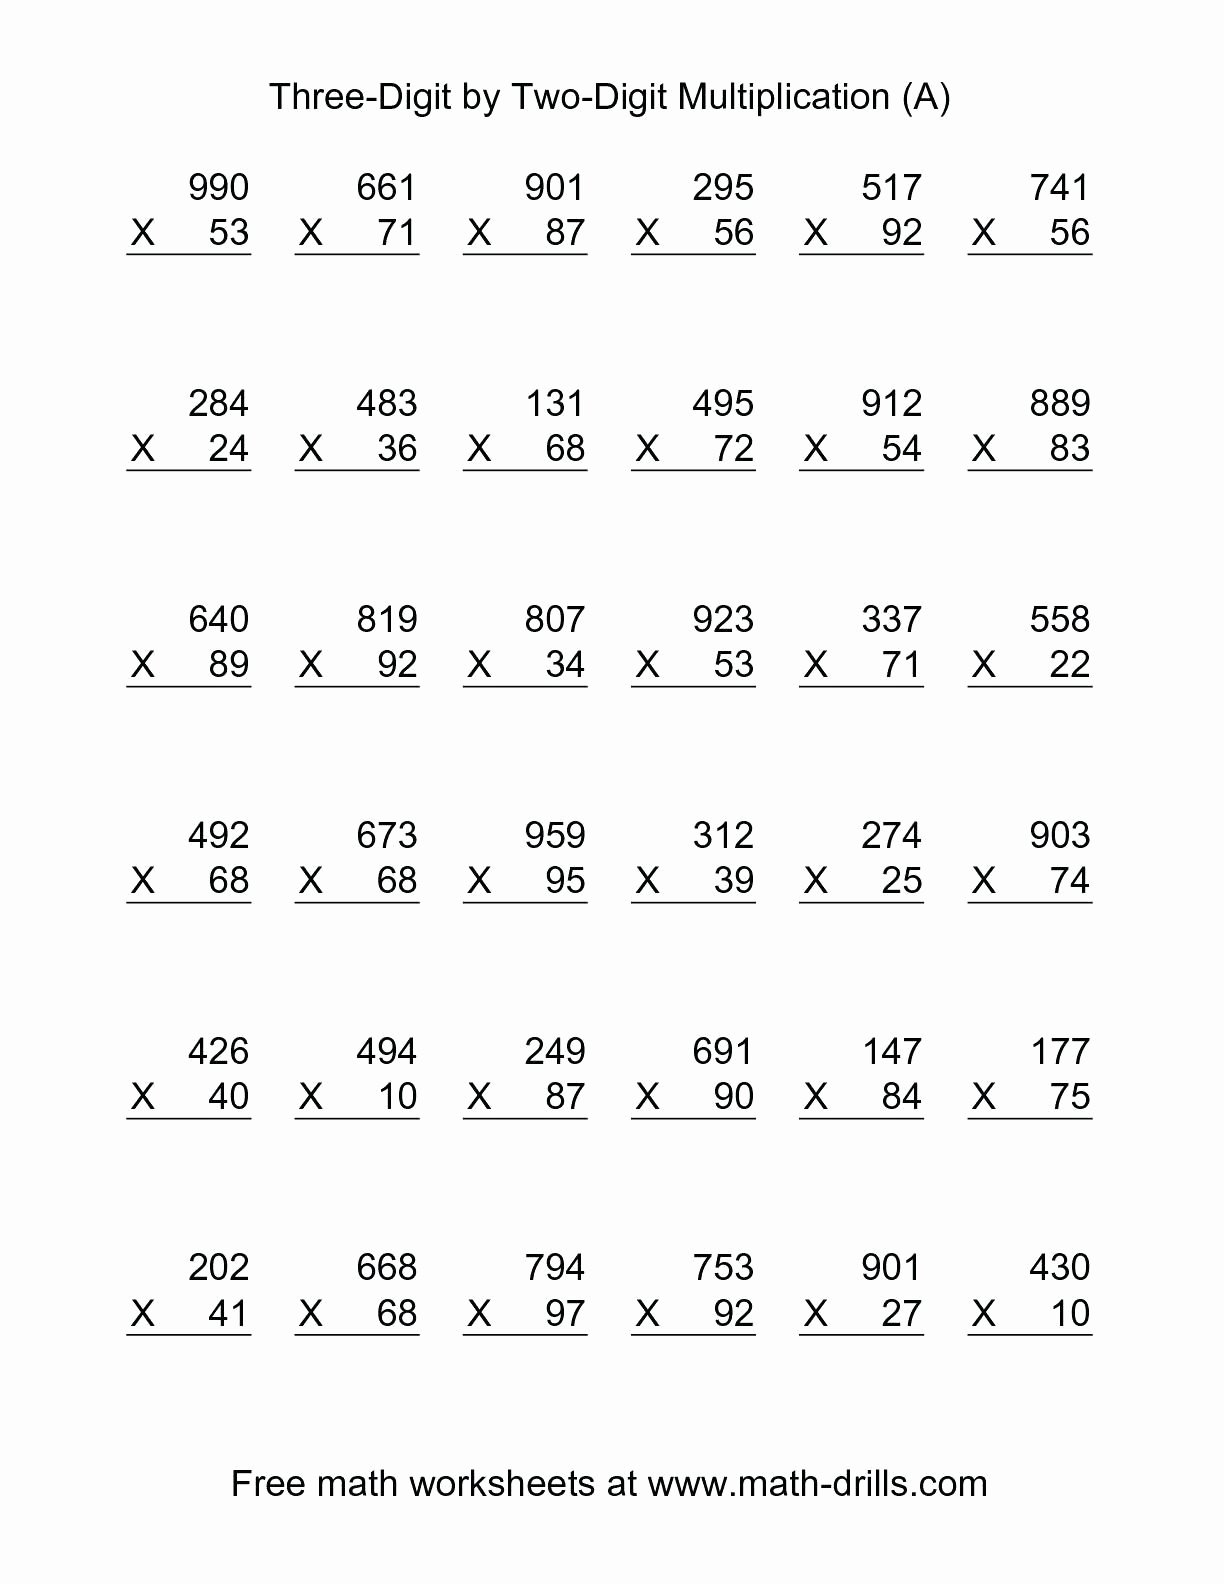 Multiplication Worksheets Printable Grade 5 Unique 5th Grade Multiplication Worksheets for Printable In 2020